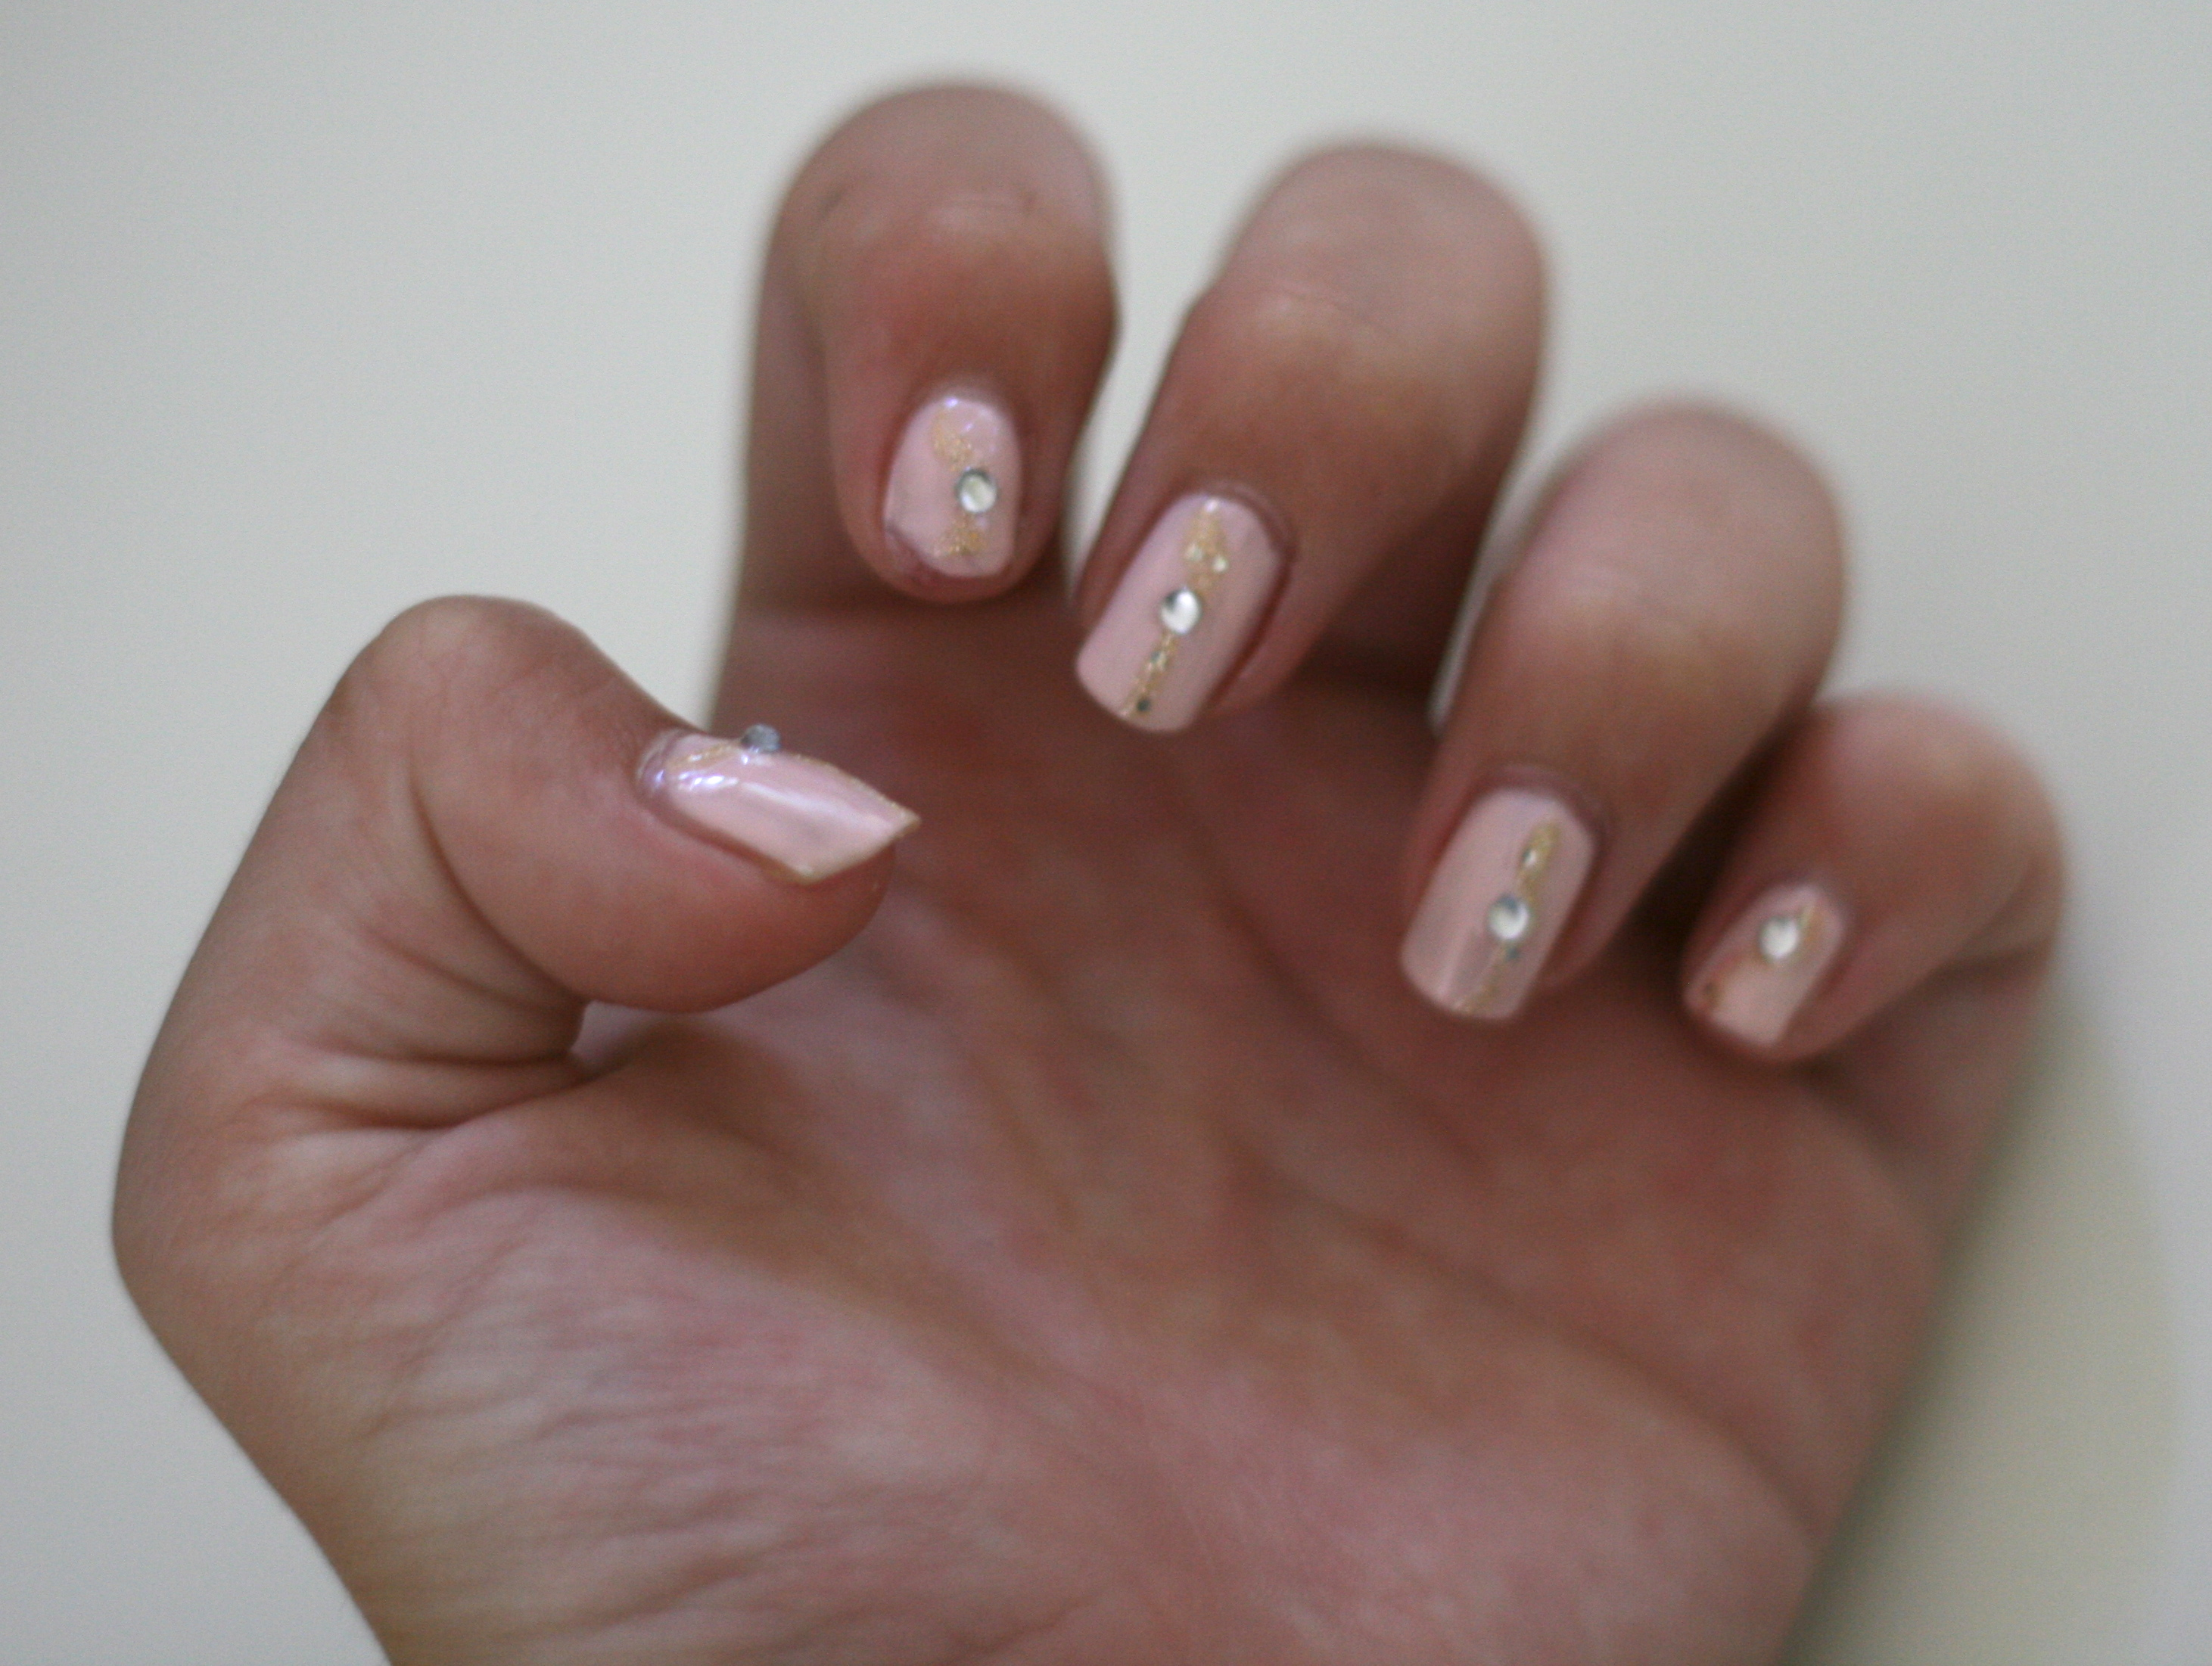 nail art | The Beauty Bunchies